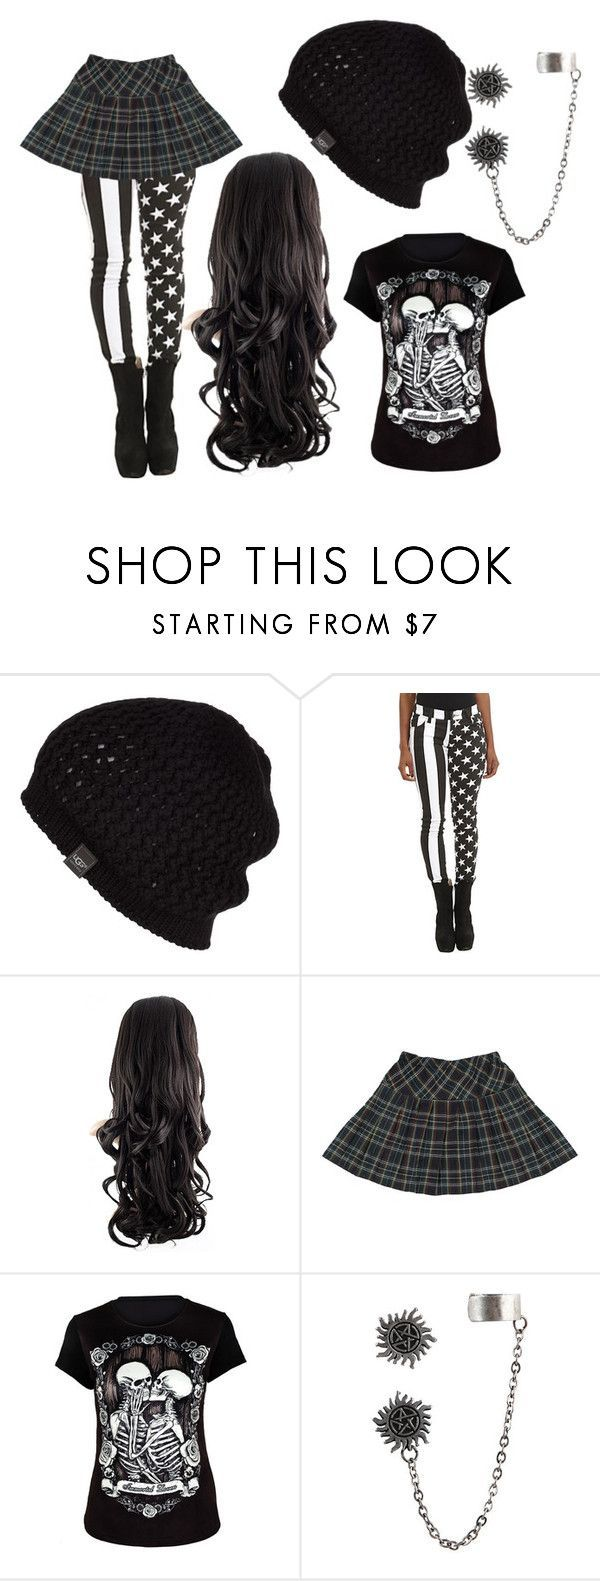 """Stars, Skulls, & Stripes"" by xxxjewelzxxx ❤️ liked on Polyvore featuring UGG Australia, Tripp, emo, scene, Punk and alternative"